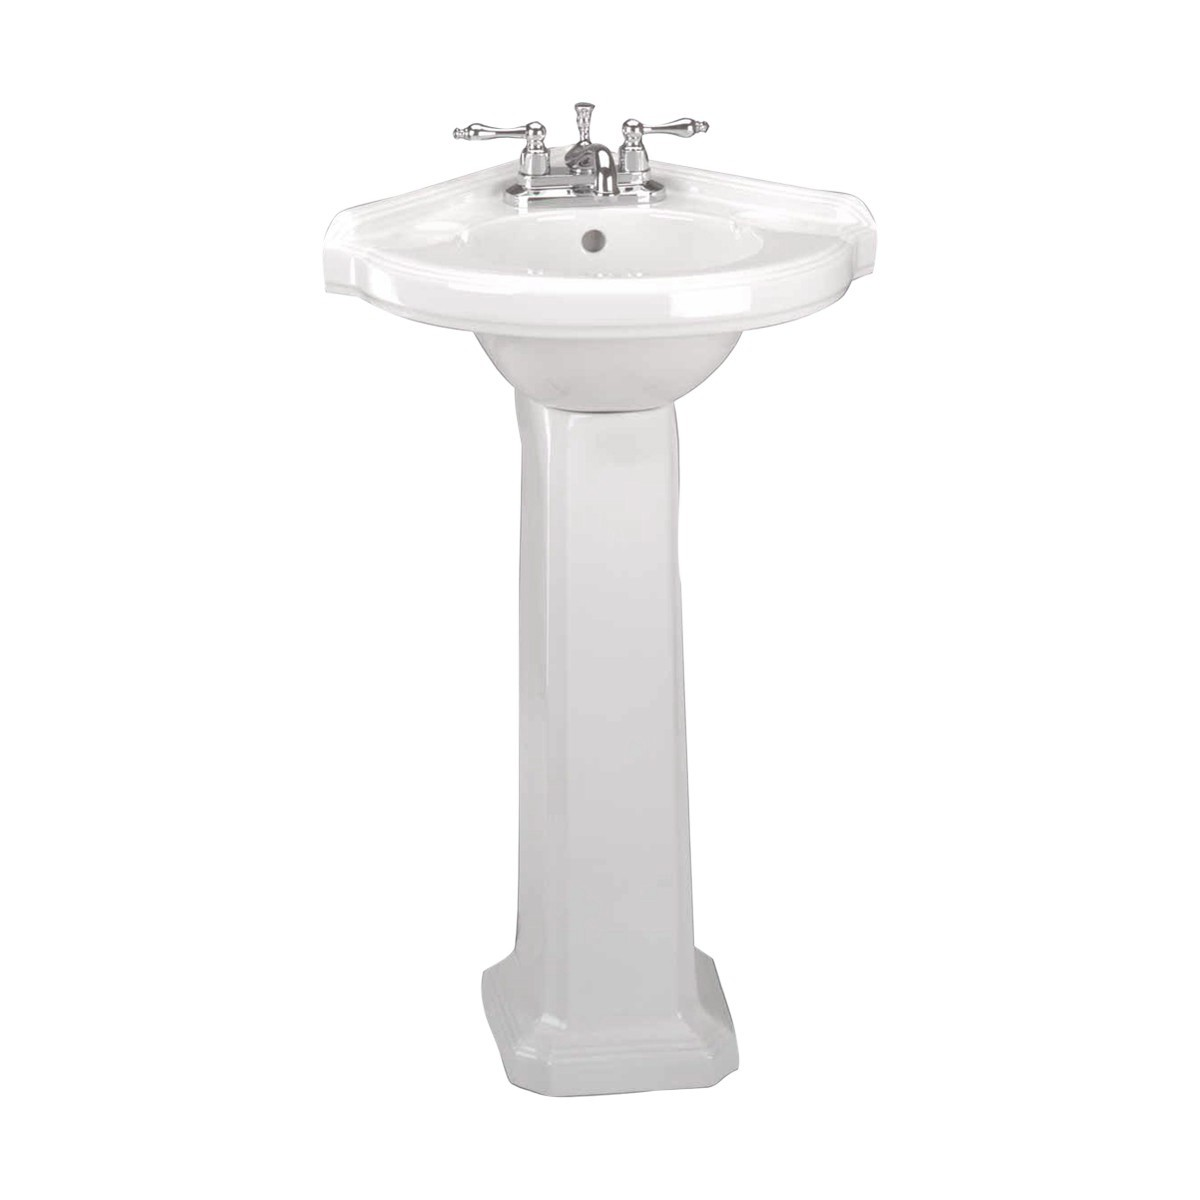 Corner Basin With Pedestal : Corner Pedestal Sink White Pedestal Sink Renovators Supply